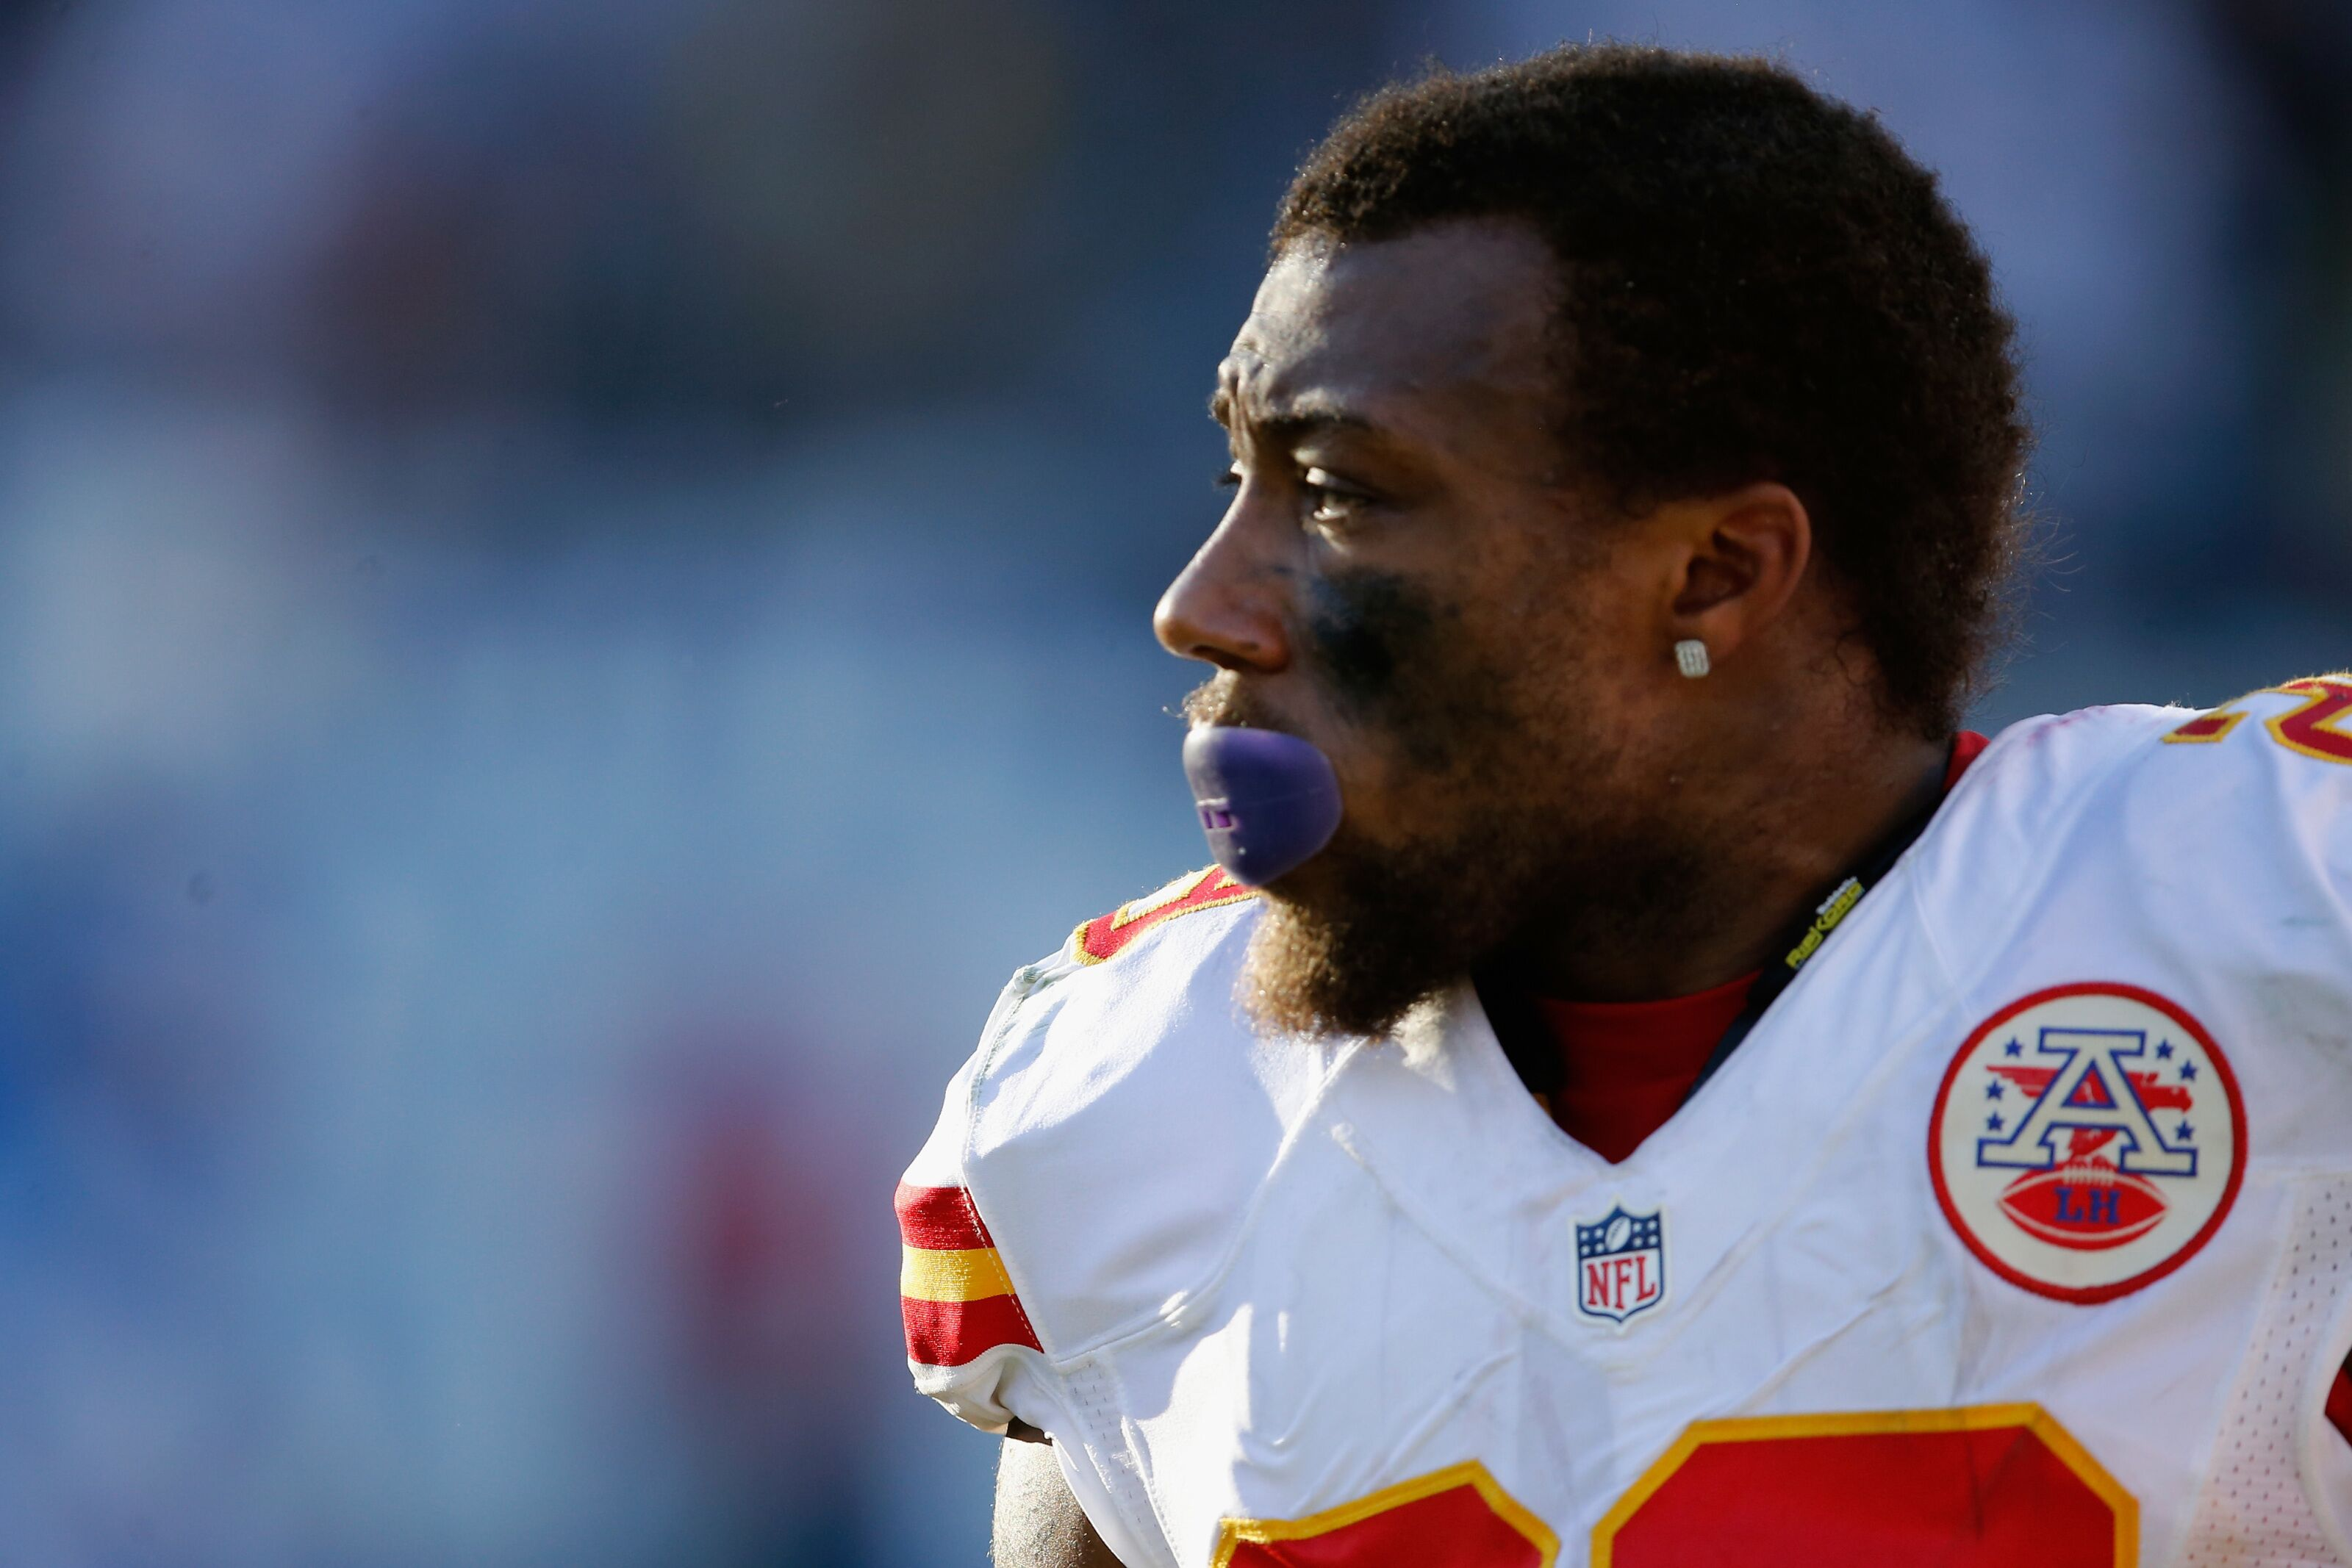 Eric Berry is getting passed over by other safeties